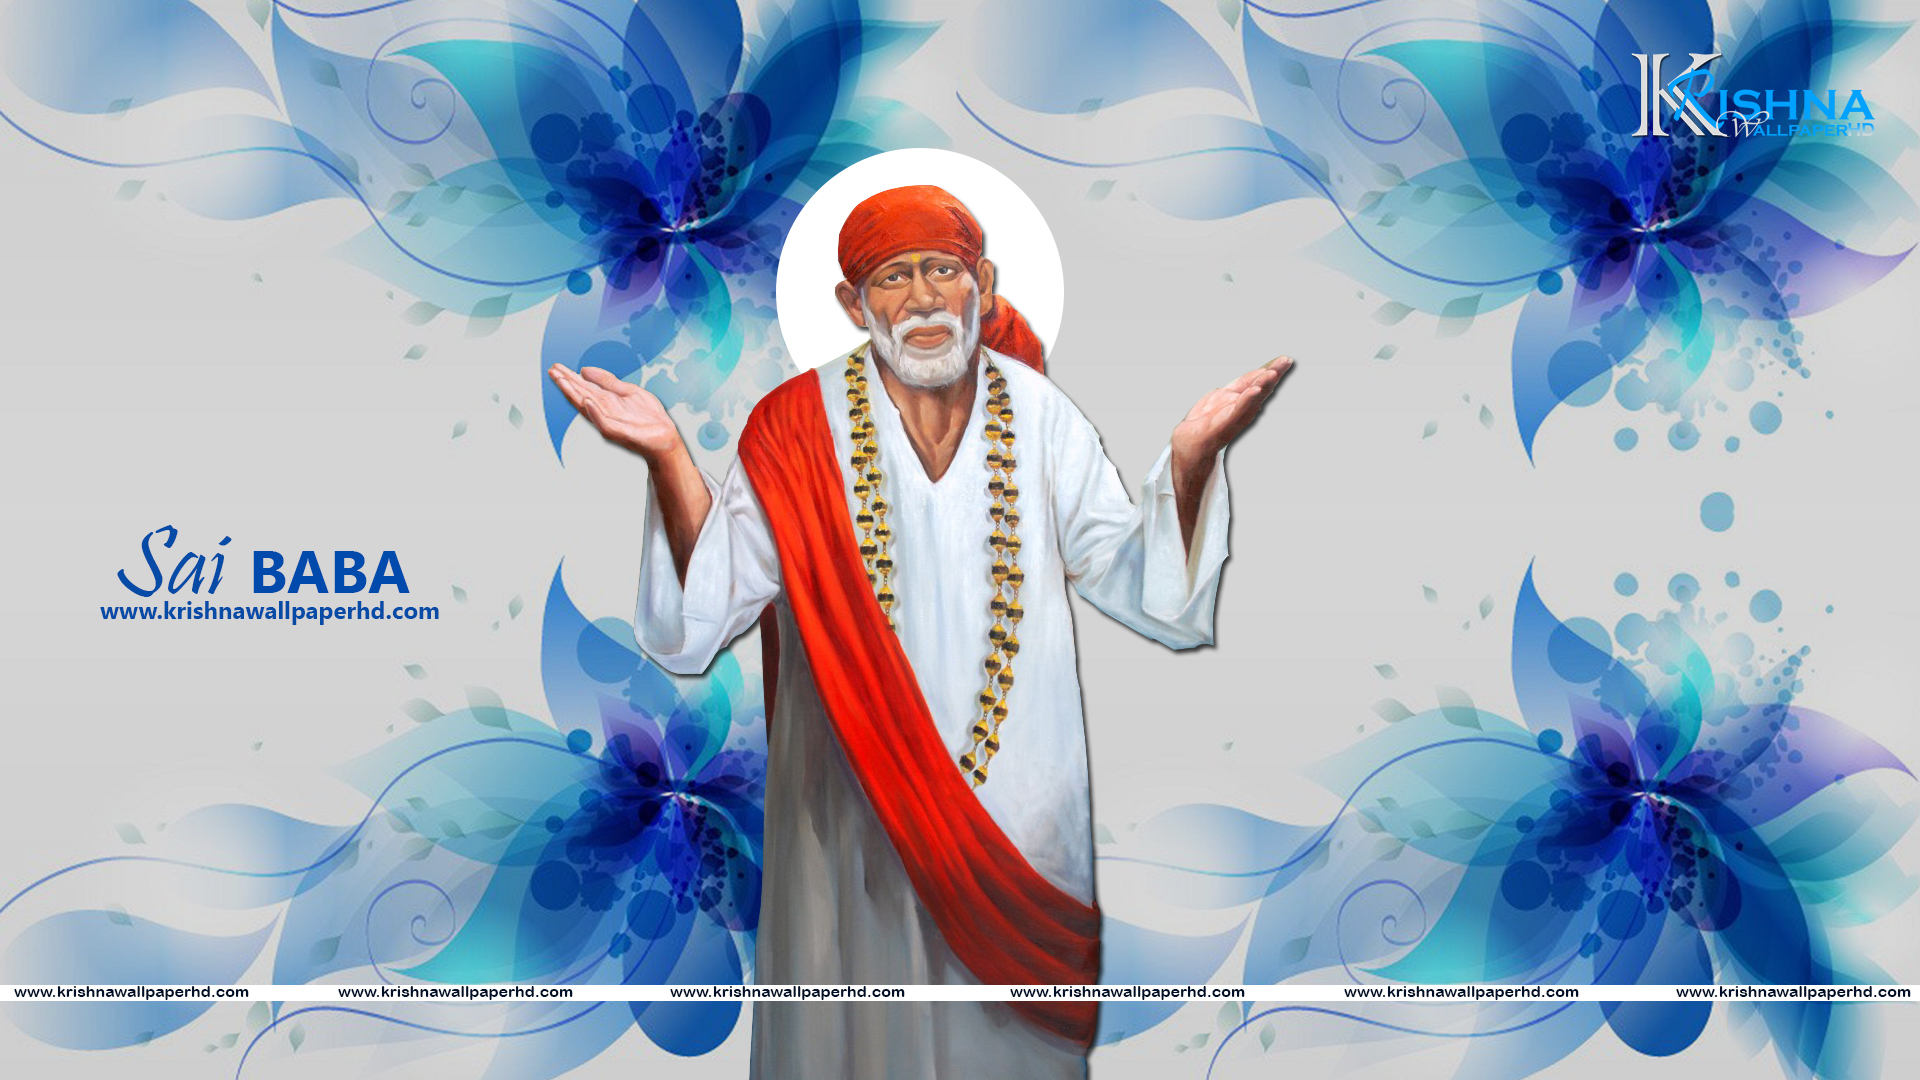 Free Download Sai Baba Full HD Size Wallpaper